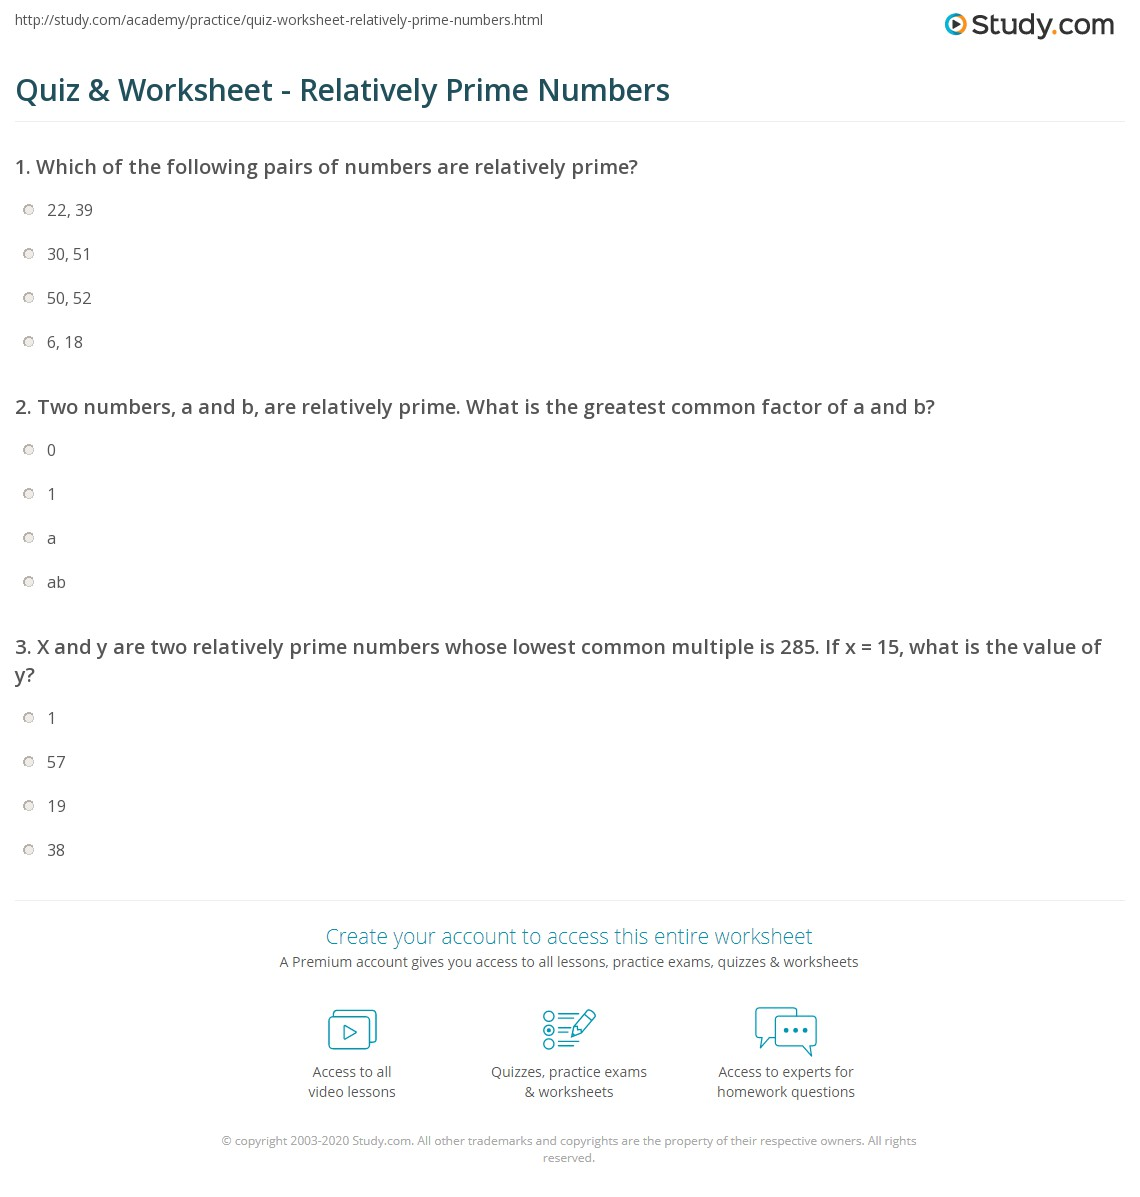 worksheet Prime Number Worksheet quiz worksheet relatively prime numbers study com print what are examples calculations worksheet